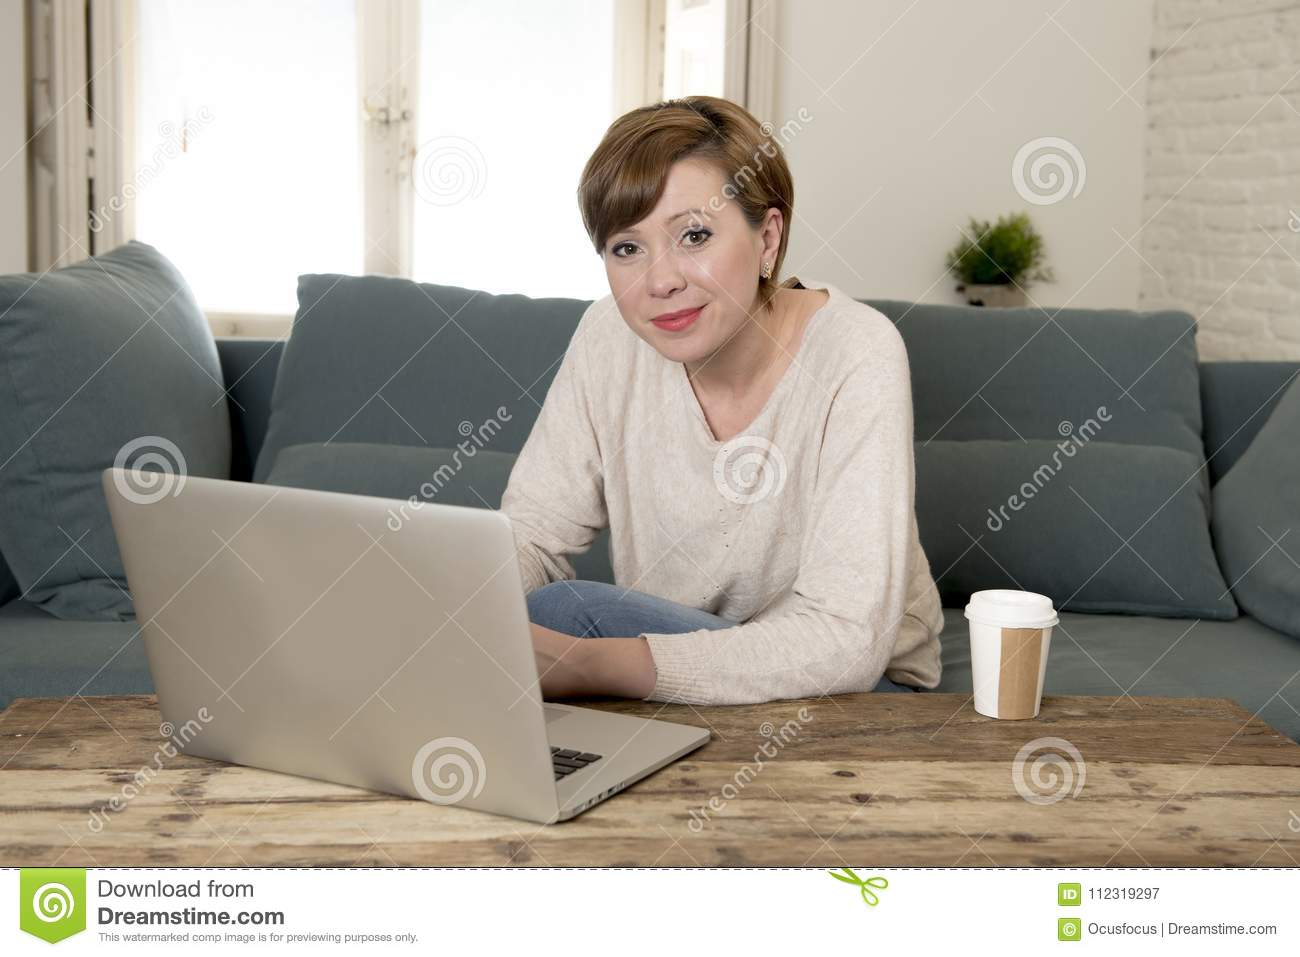 Young attractive and happy woman at home sofa couch doing some laptop computer work smiling relaxed in entrepreneur lifestyle